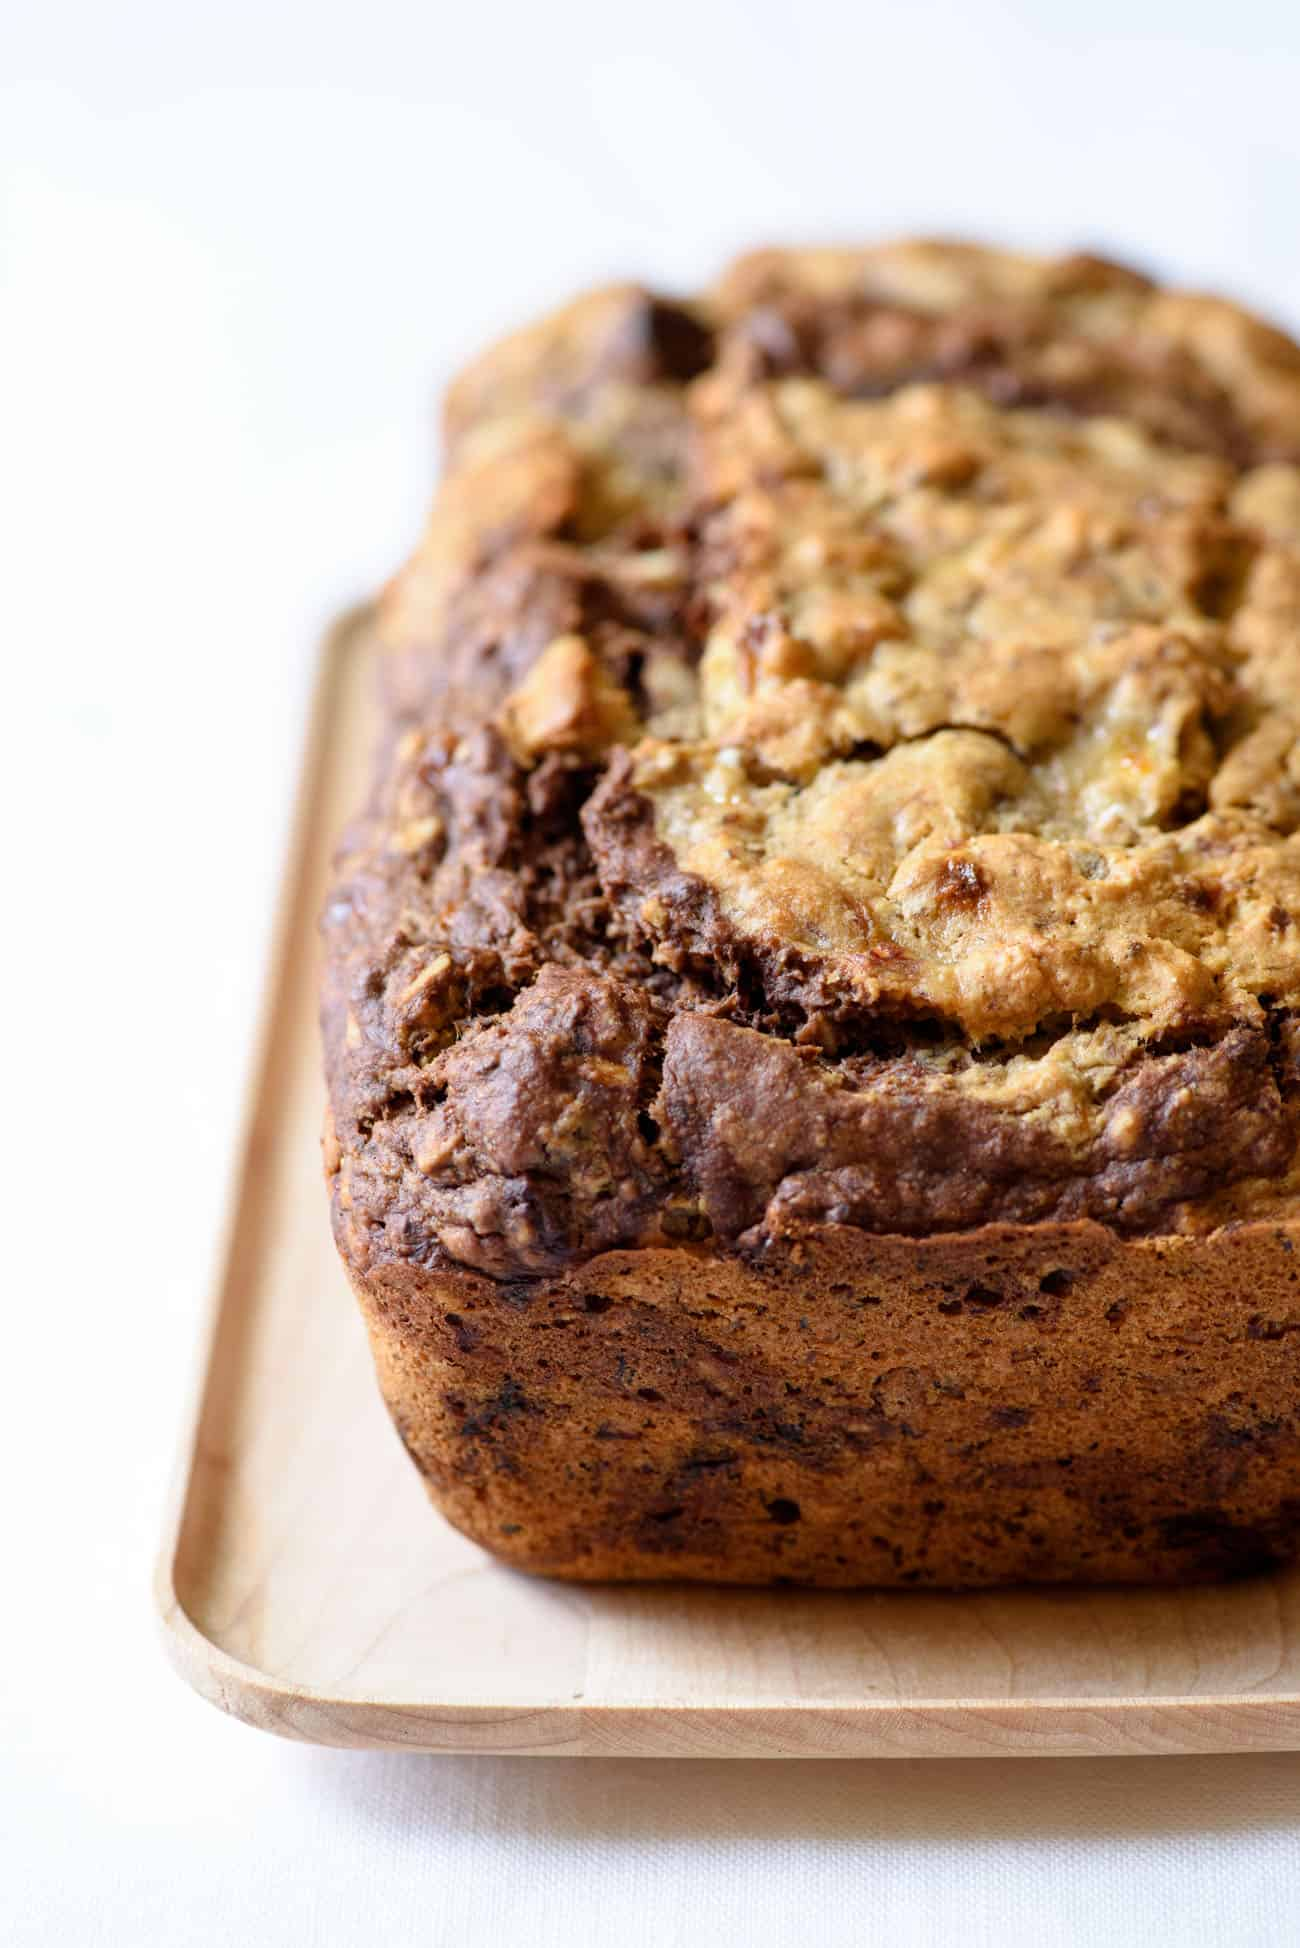 Marble banana bread loaf on a rectangular wooden plate on a while tablecloth